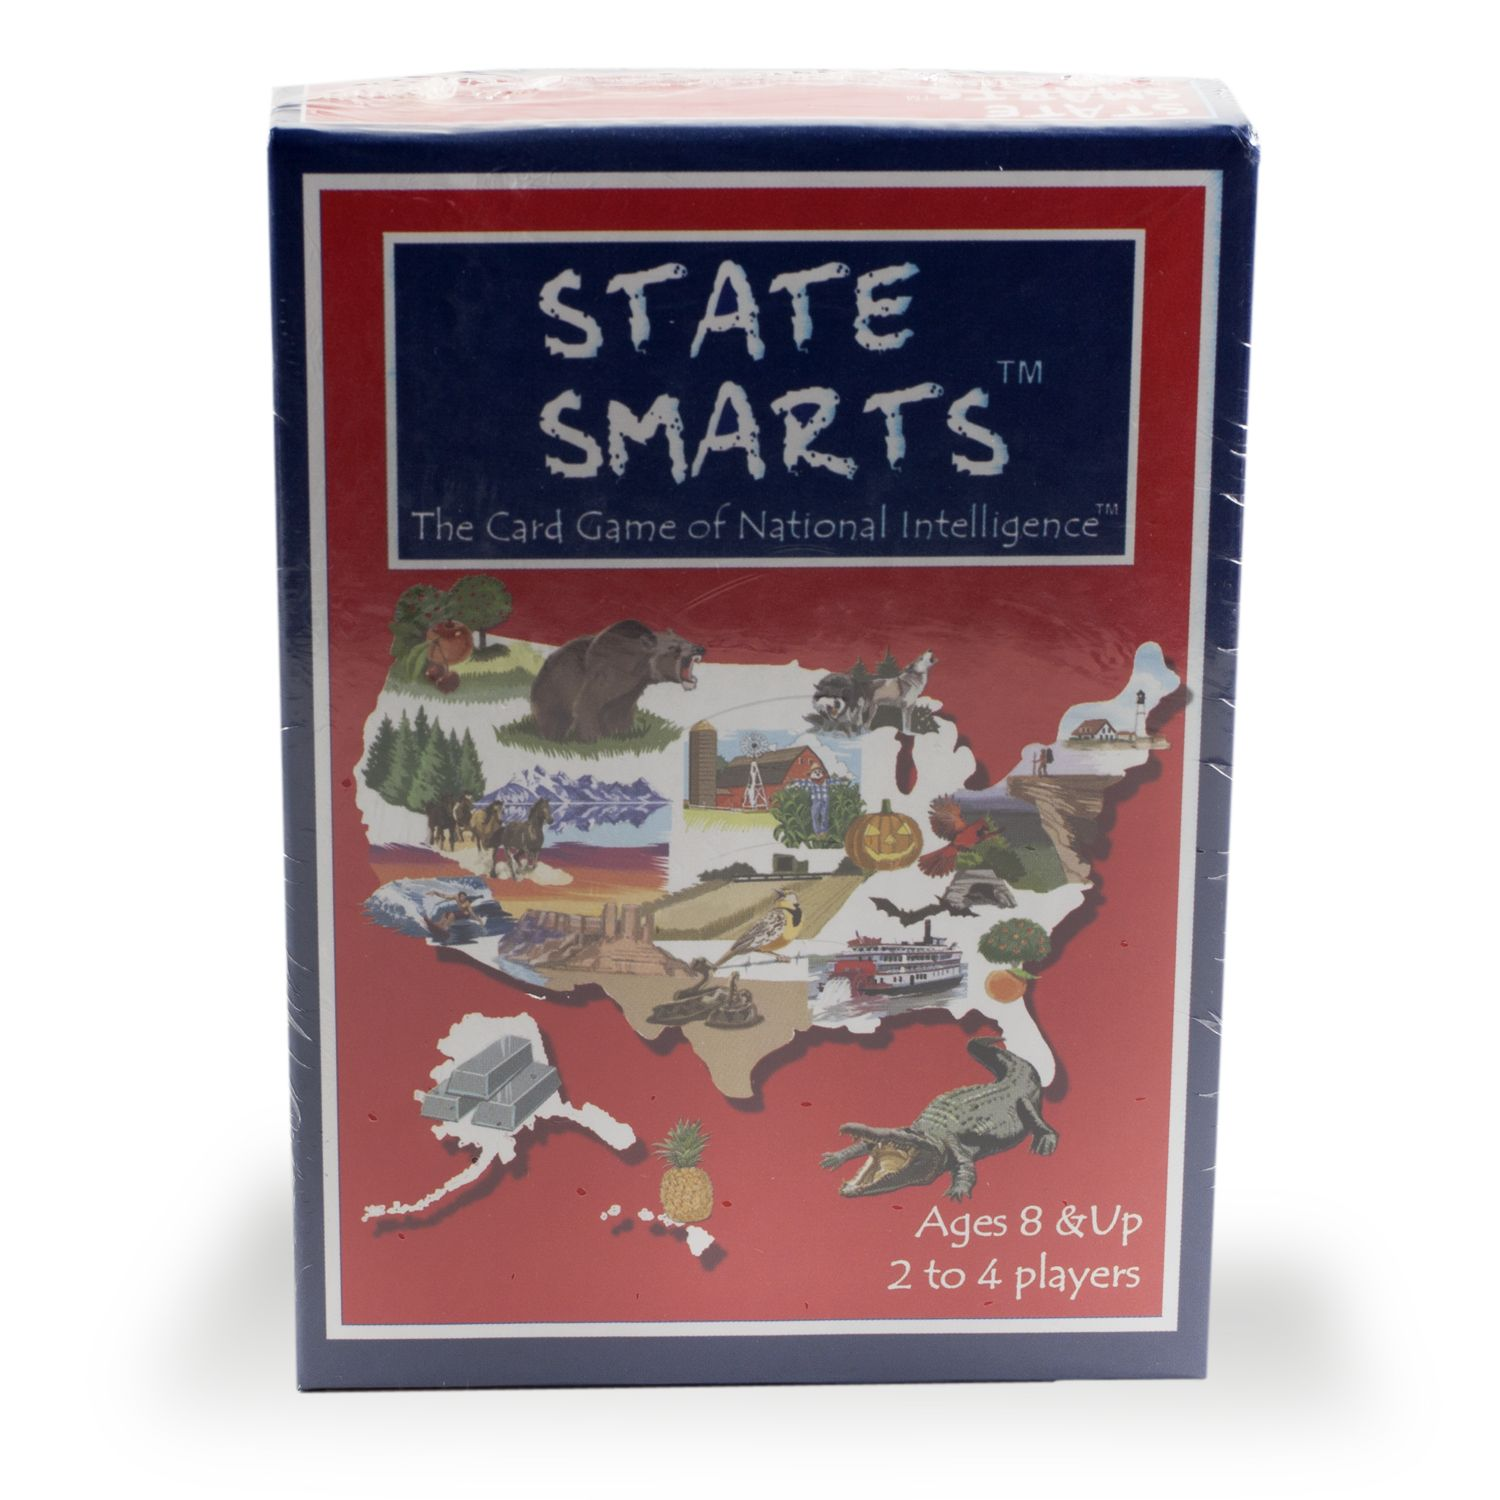 State Smarts: The Card Game of National Intelligence